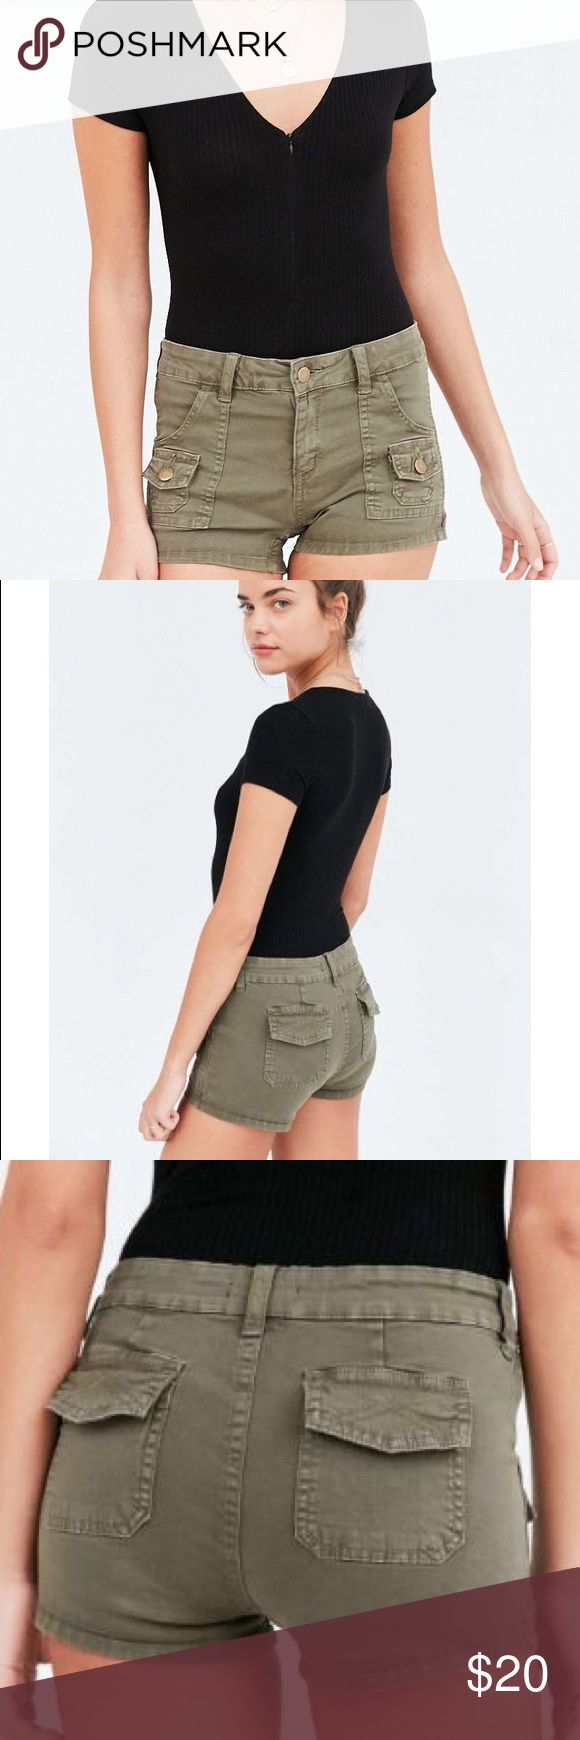 Hipster High Rise BDG Short from UO Hipster High Rise BDG Utility Short from UO! Green Dana high-rise utility shirt features a button zip fly closure with 6 various pockets, Fitted + short for a flirty finish.  Cotton/Spandex Mix; SIZE 27 Urban Outfitters Shorts Jean Shorts